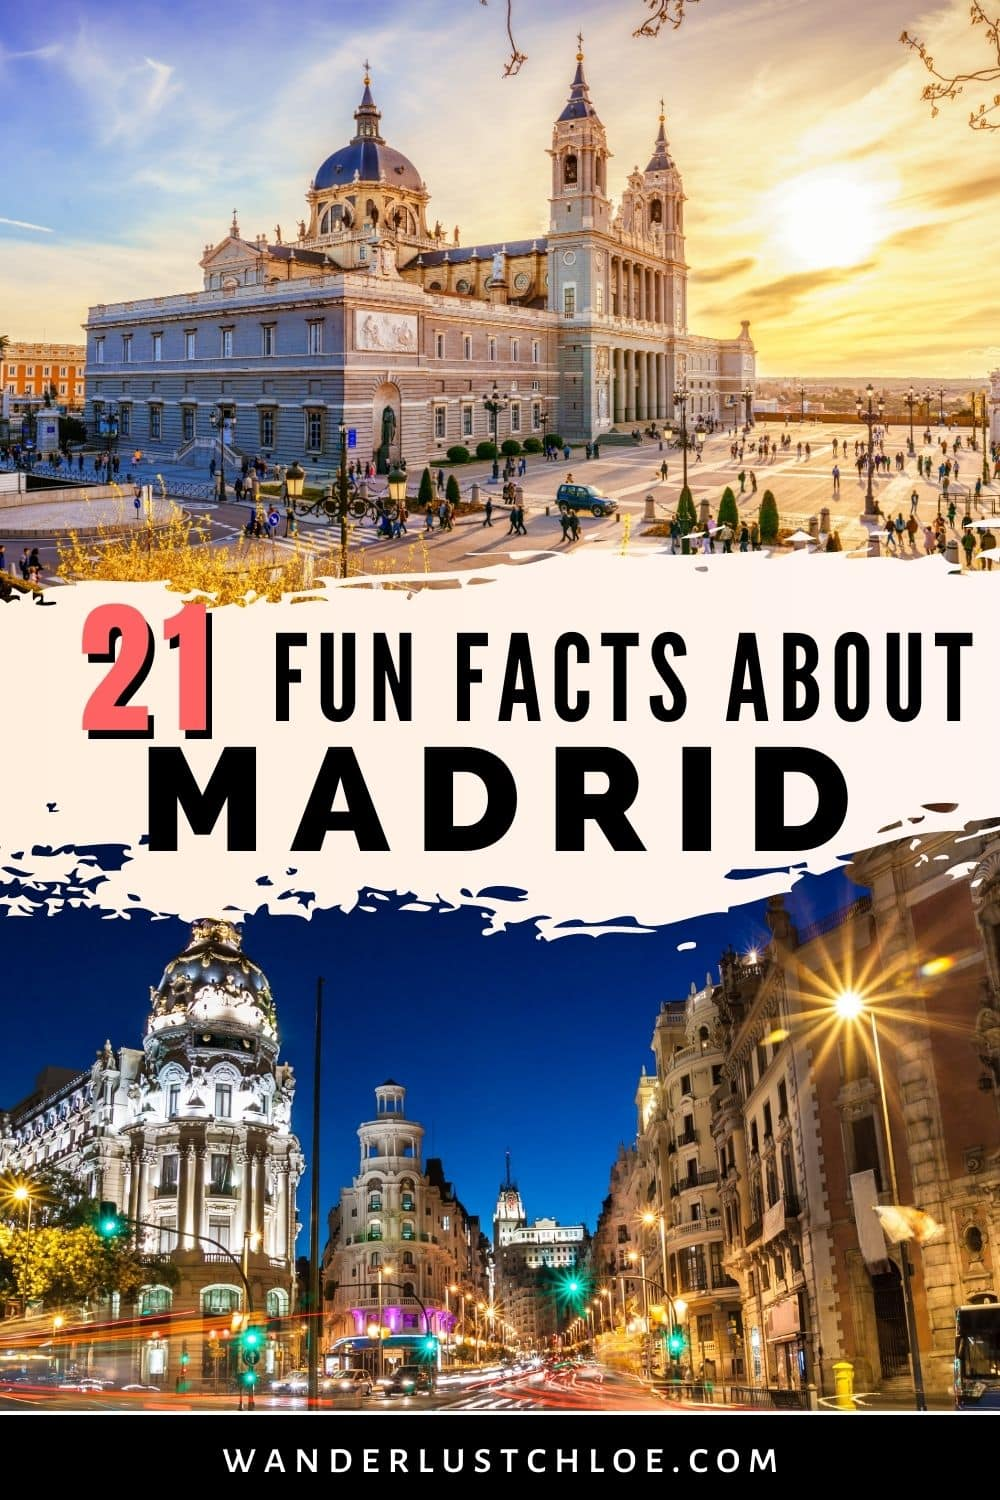 21 Facts about Madrid